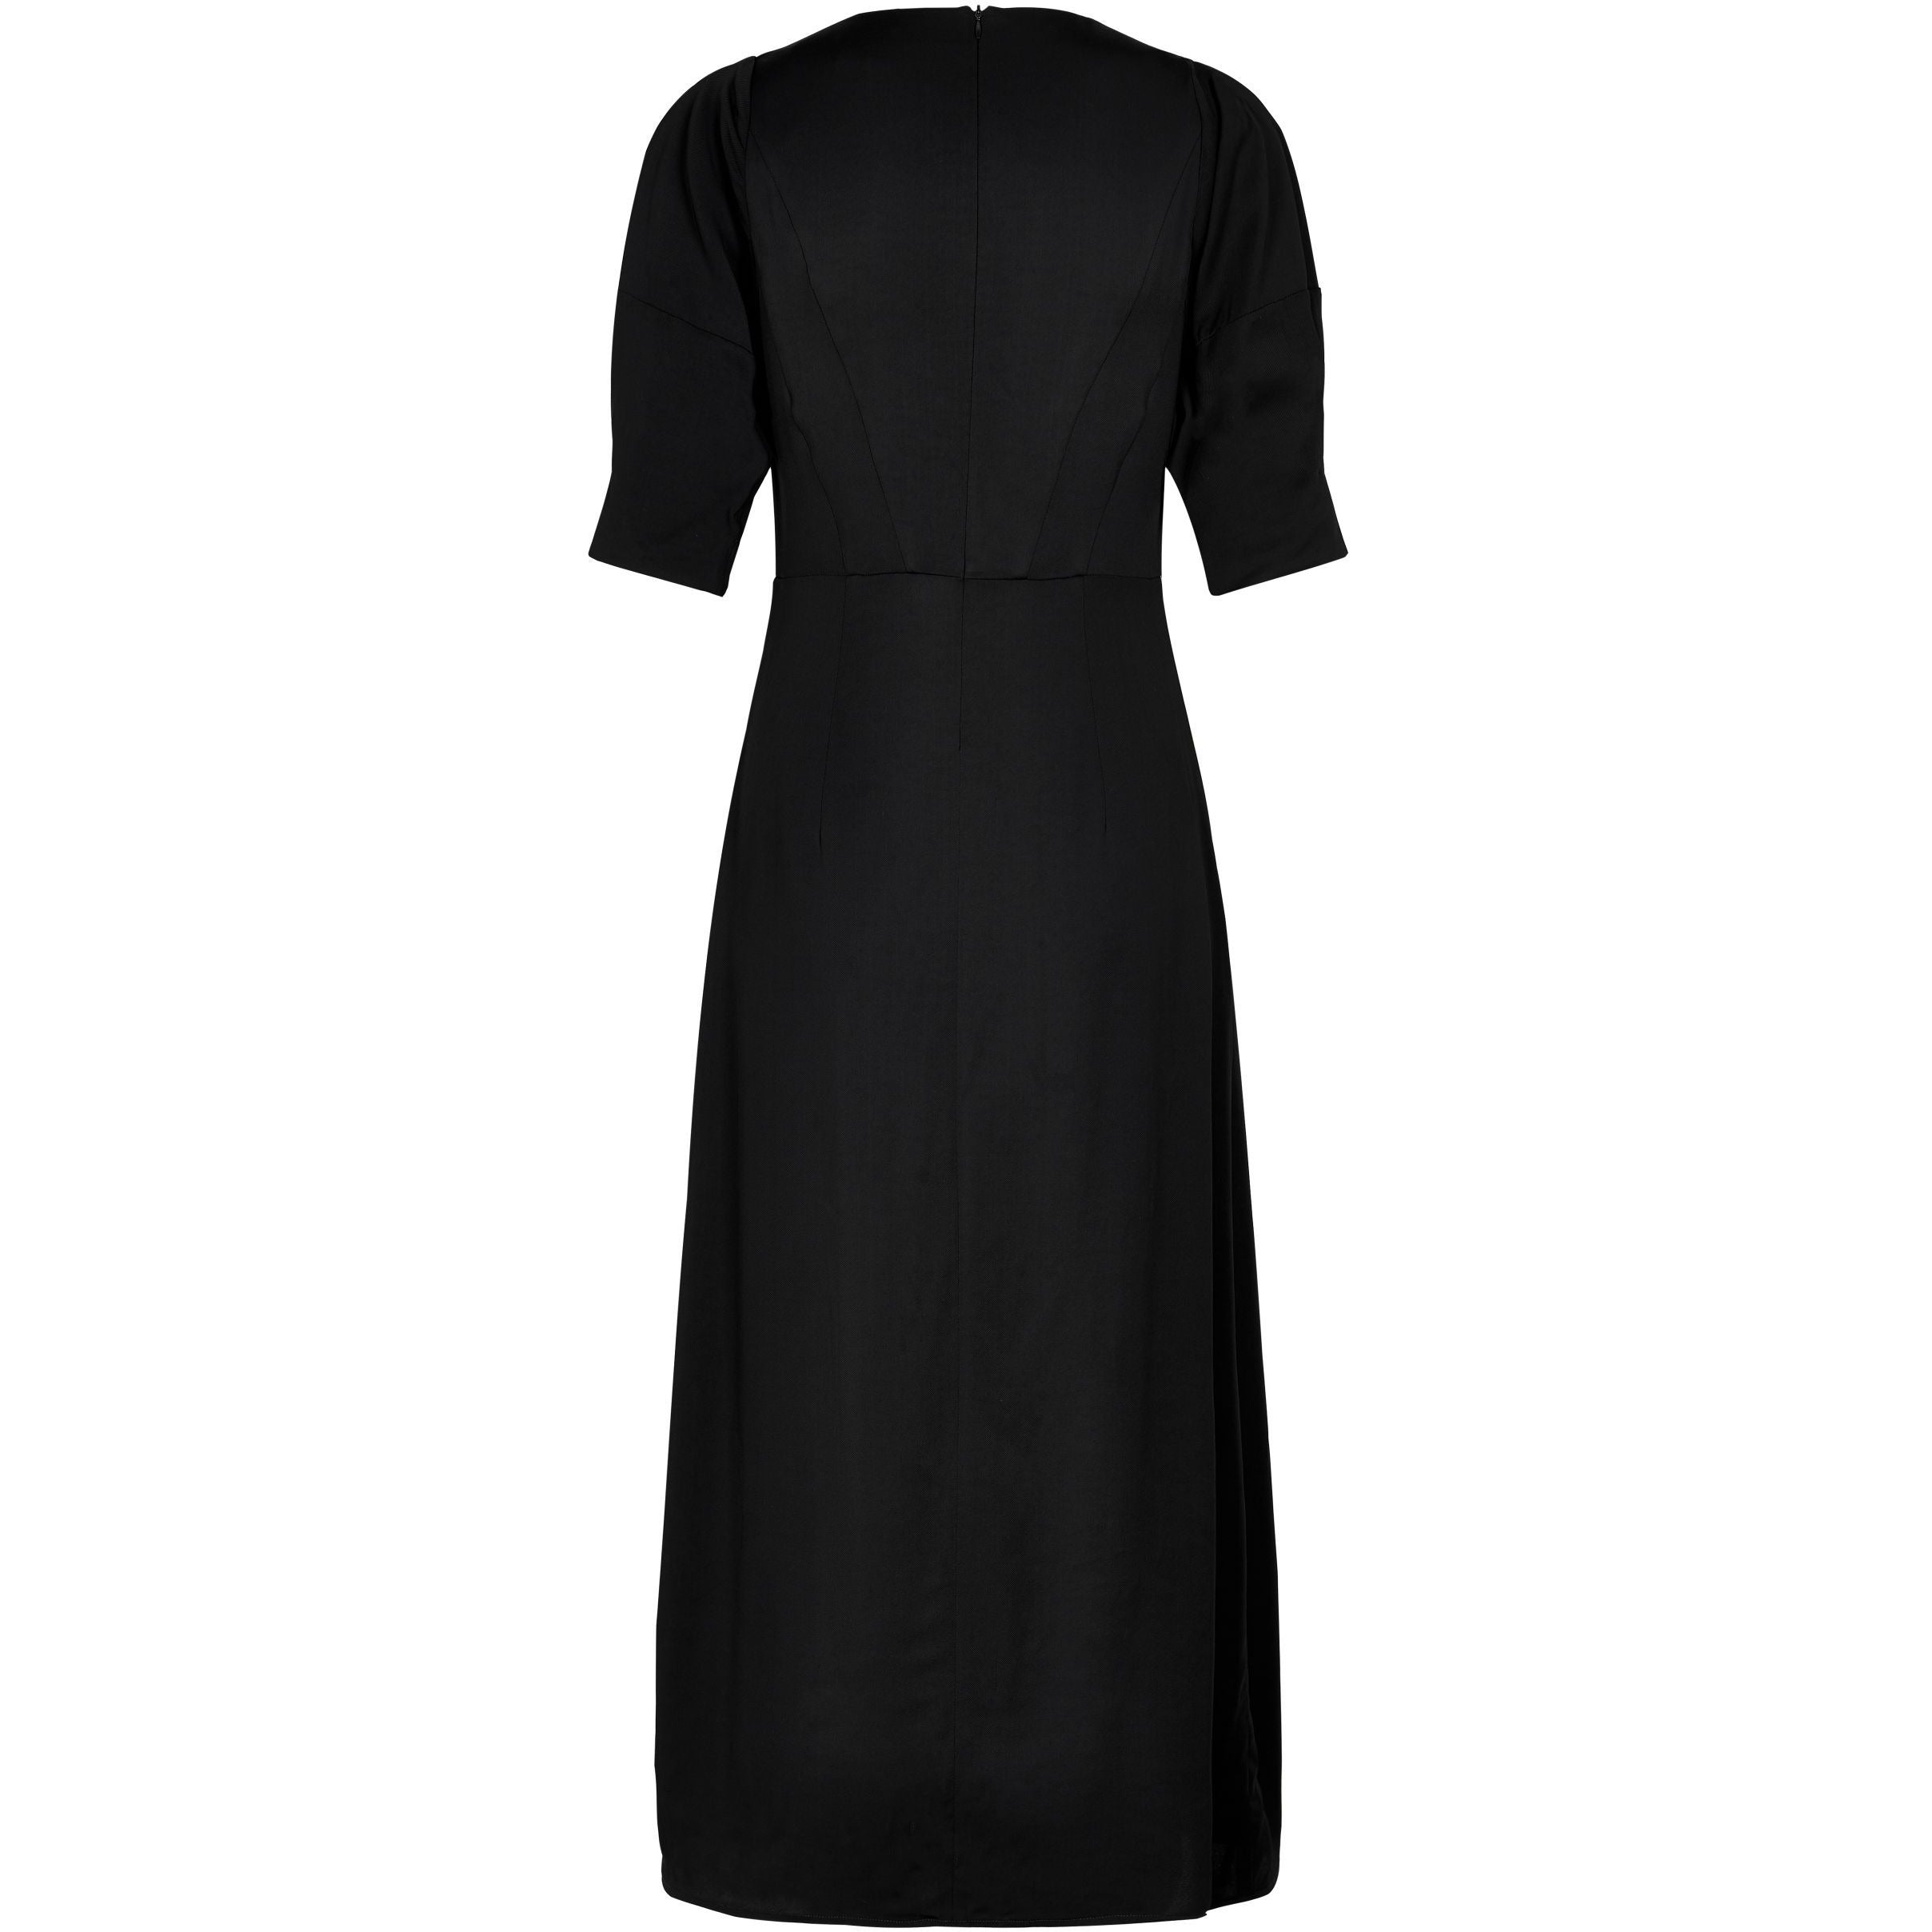 Noa Noa Black Dress 196001